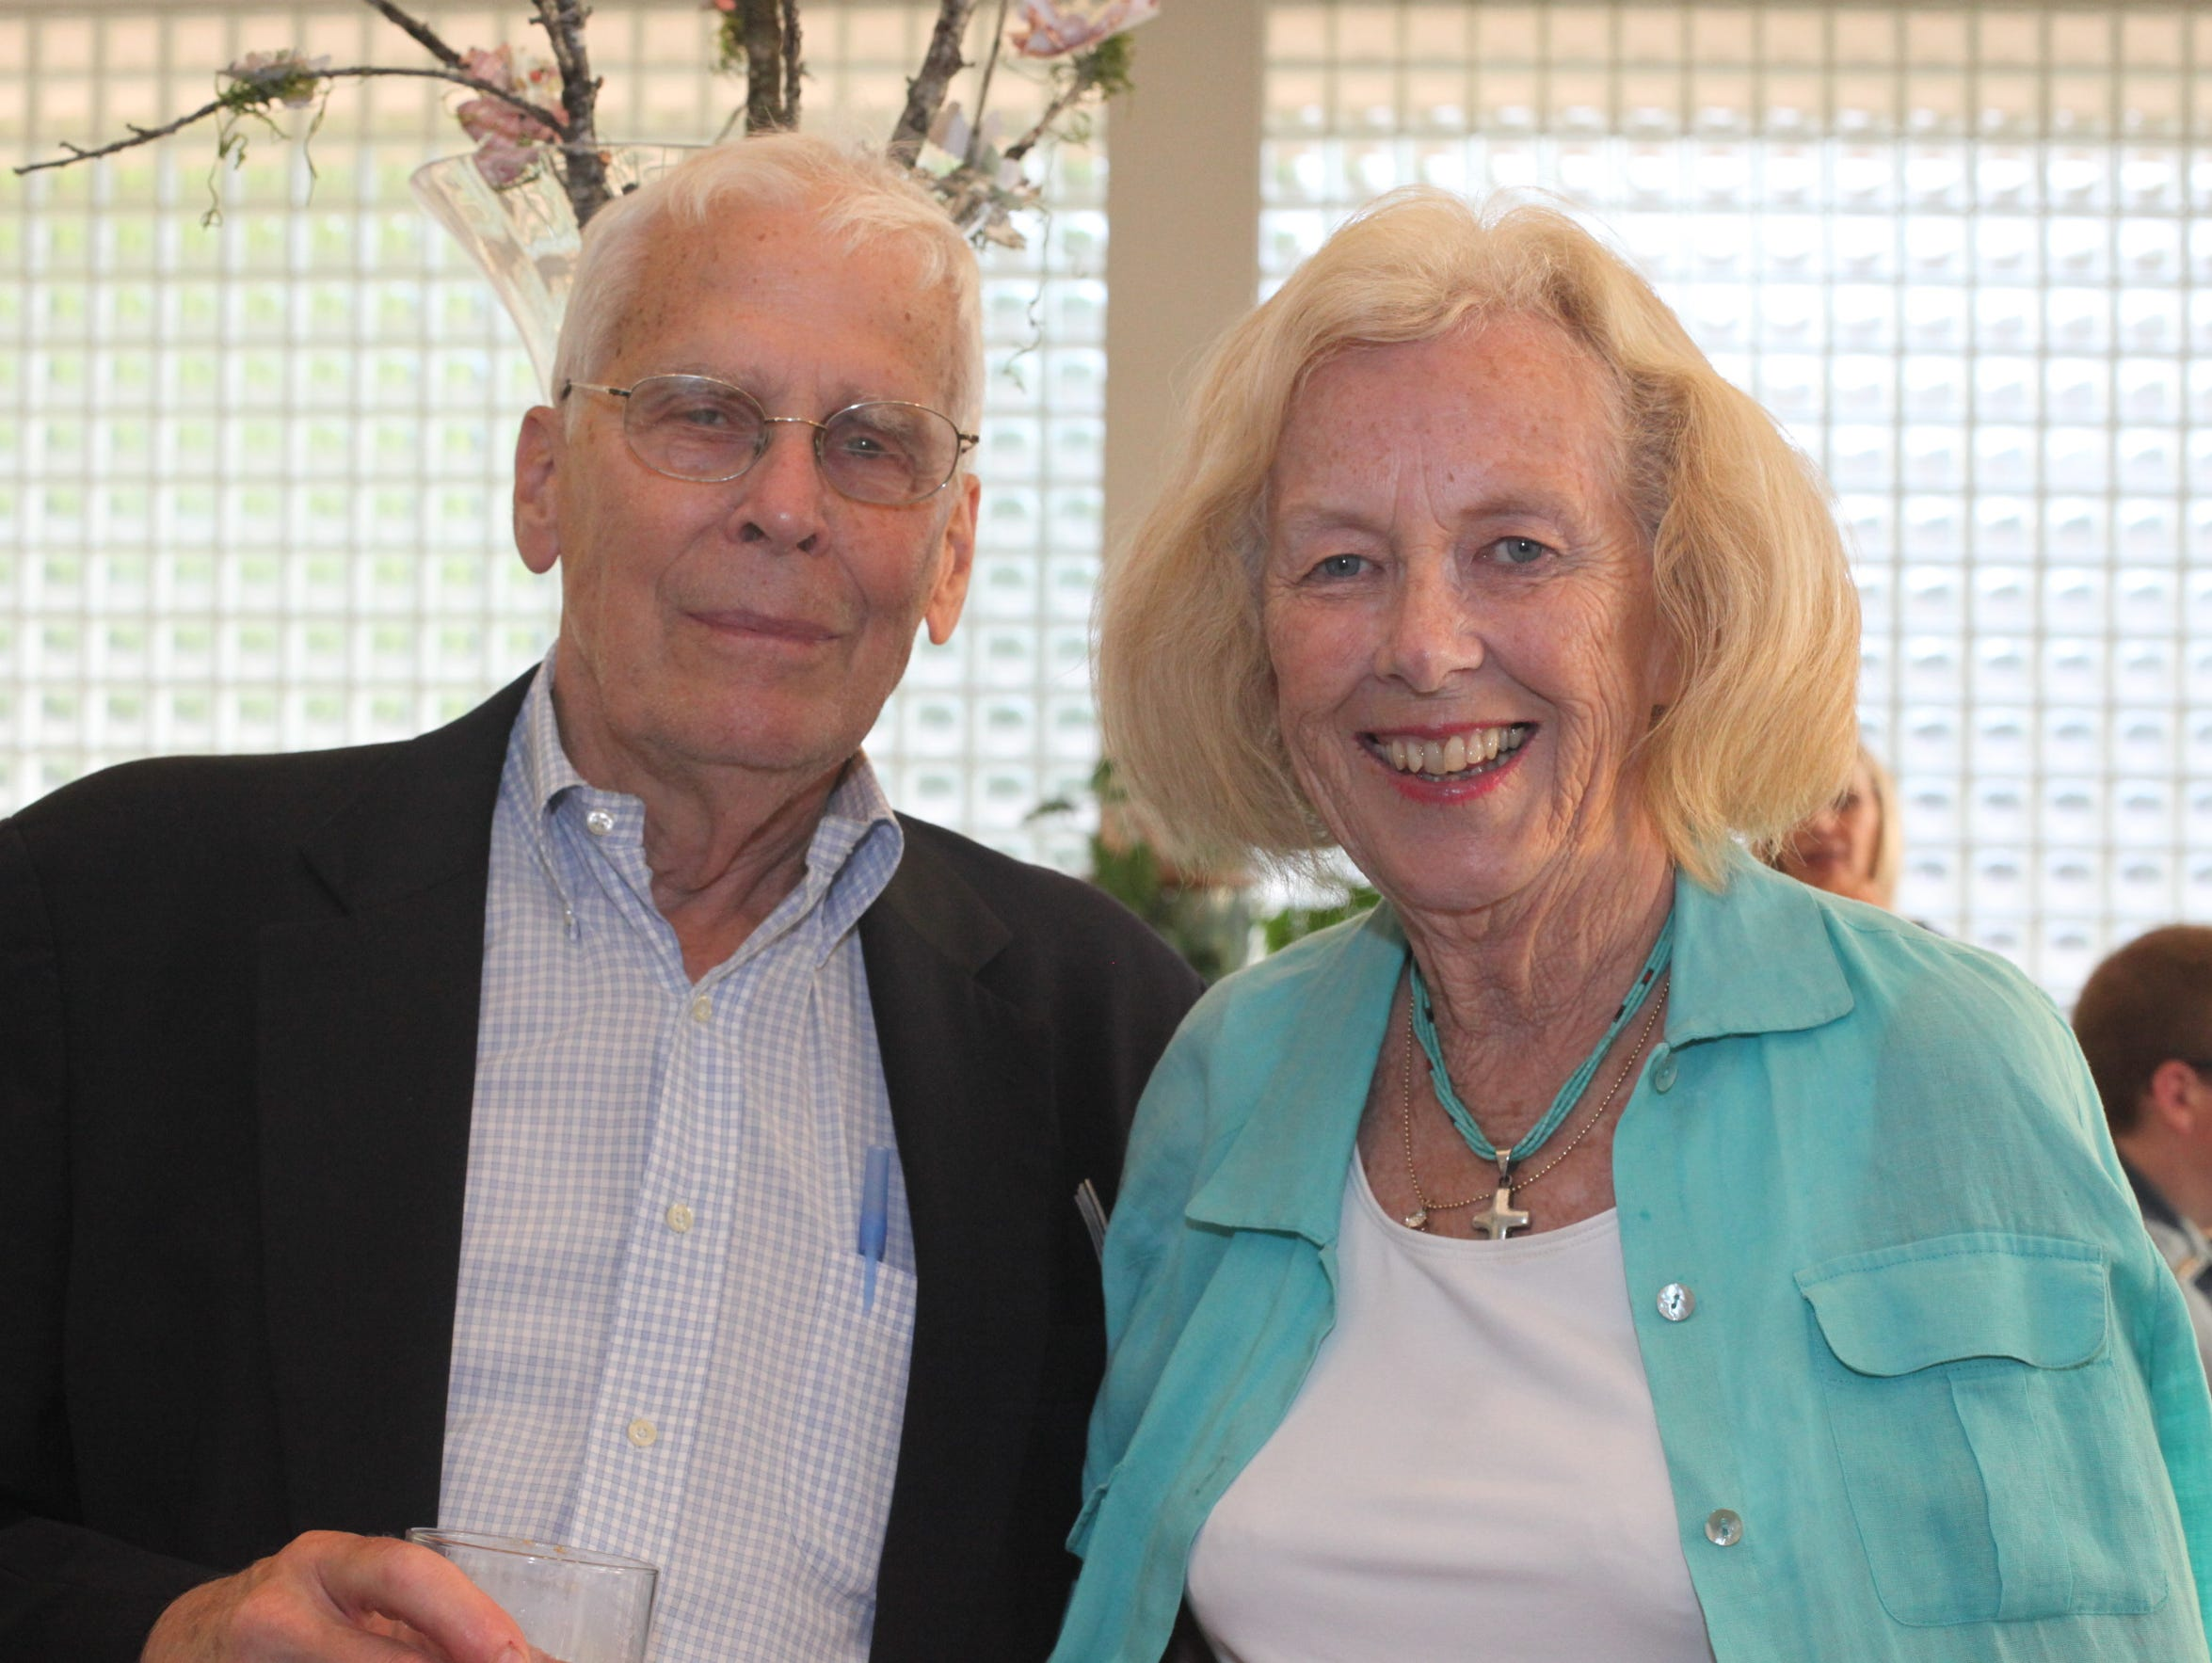 Dr John Bentley and Founder Roseann Bentley at An Evening